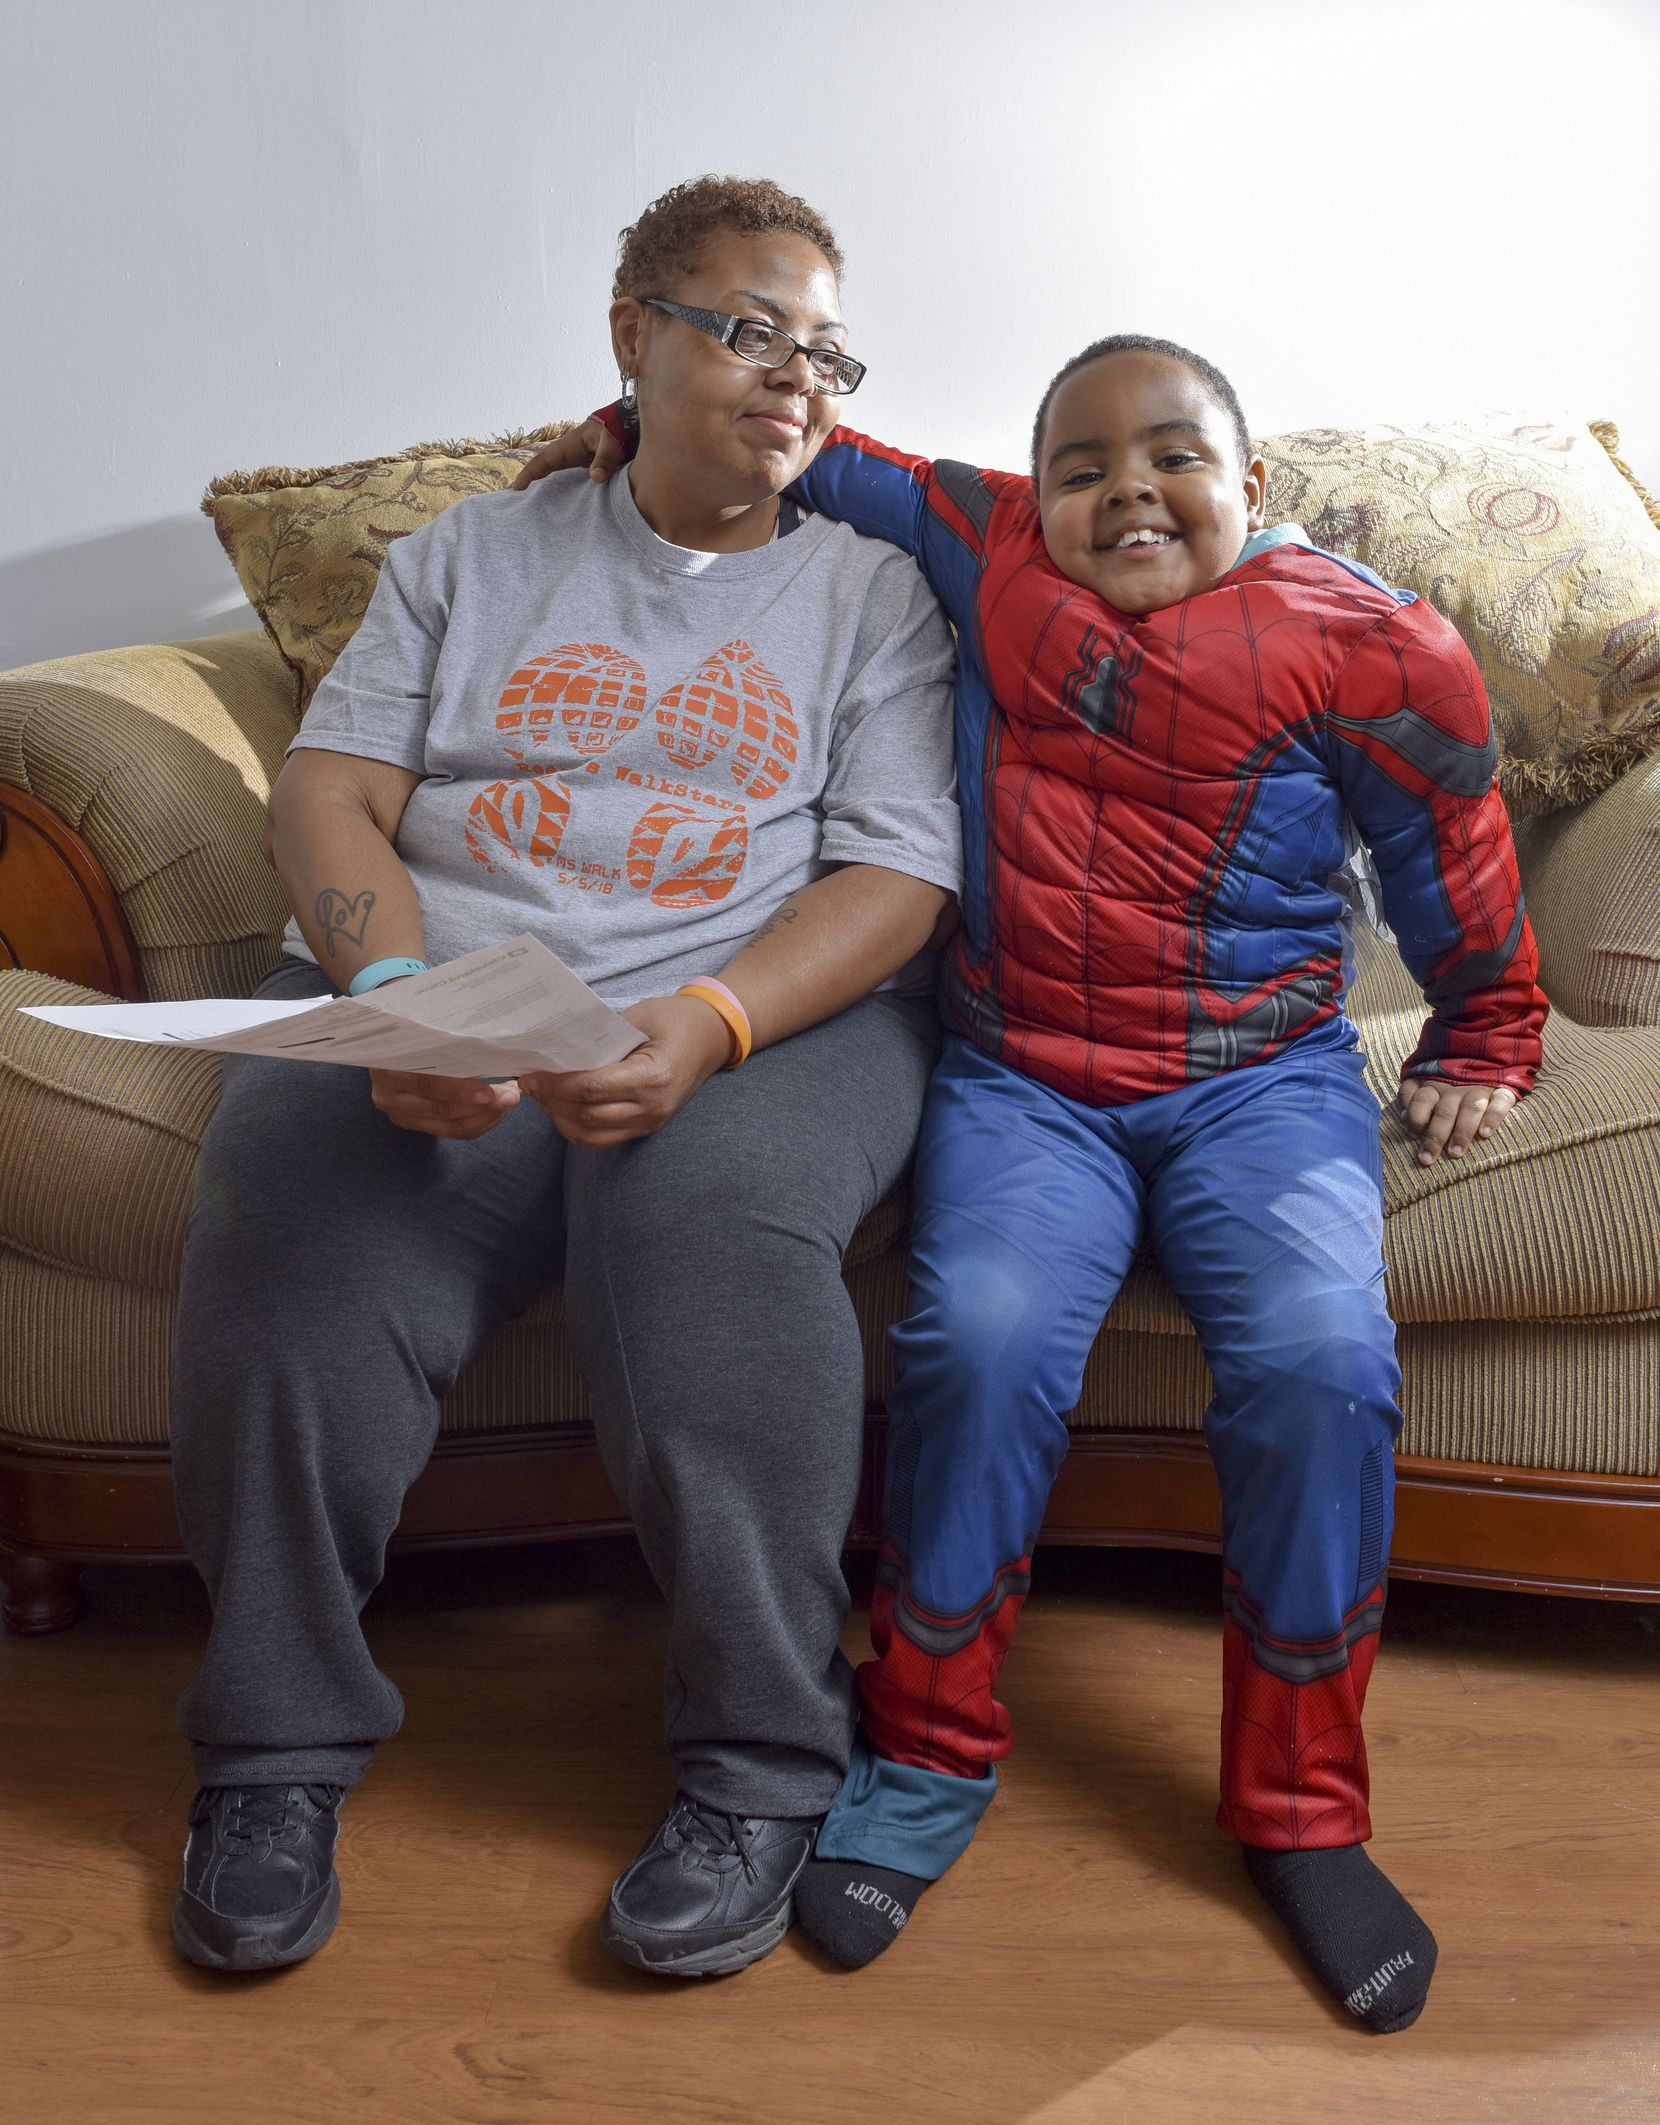 Shereese Hickson supports herself and her son, Isaiah, on $770 a month.